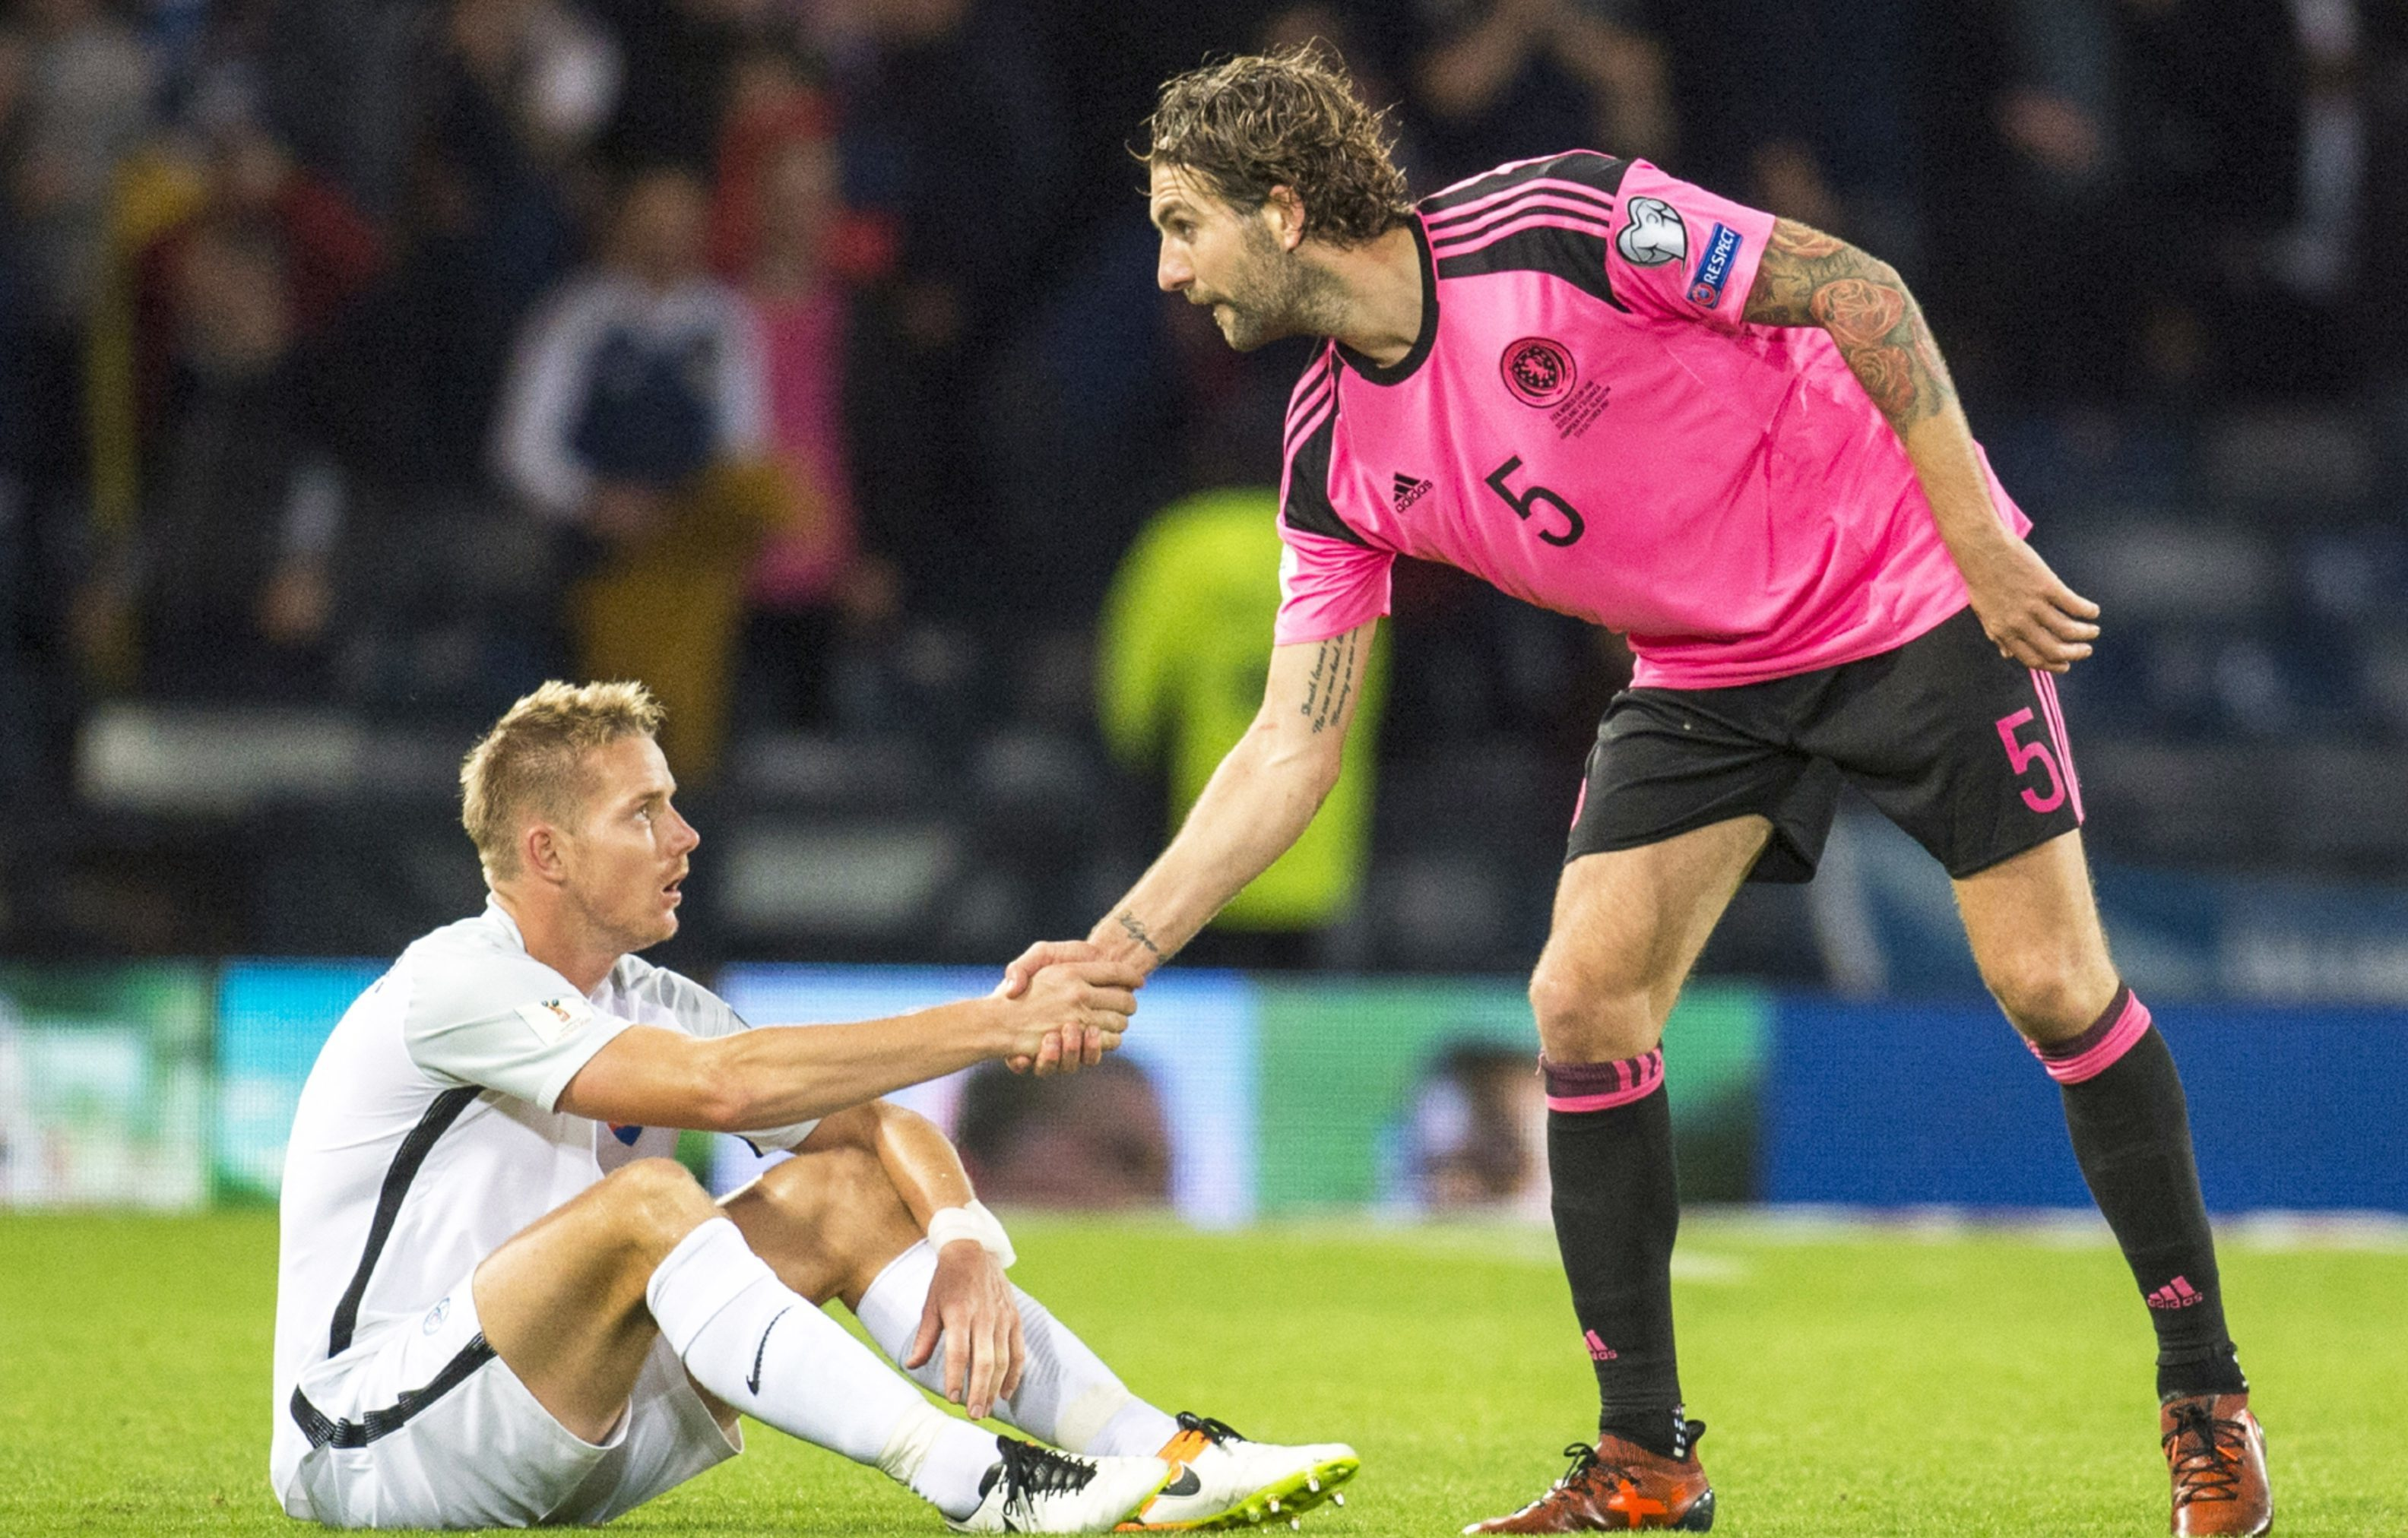 Hard luck pal! Charlie Mulgrew shakes hands with Slovakia's Tomas Hubocan at full-time.